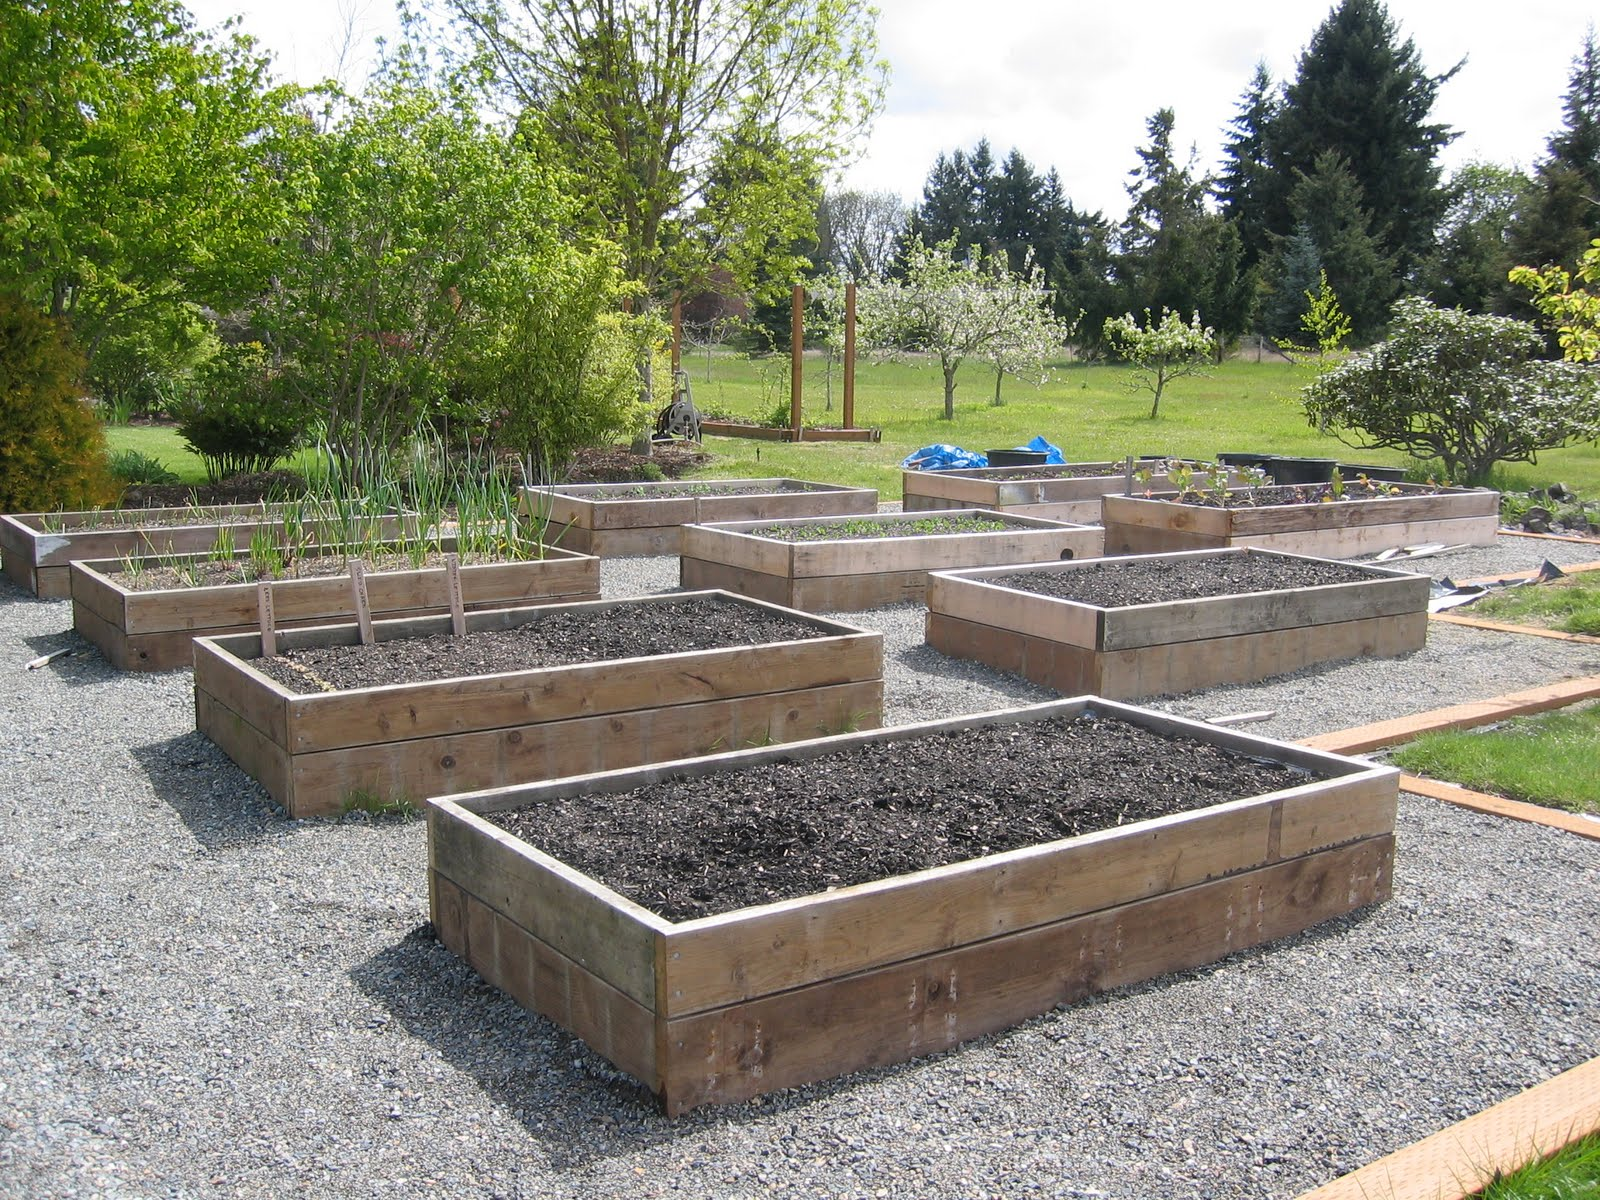 The tacoma kitchen garden journal raised vegetable beds for Small kitchen garden plans